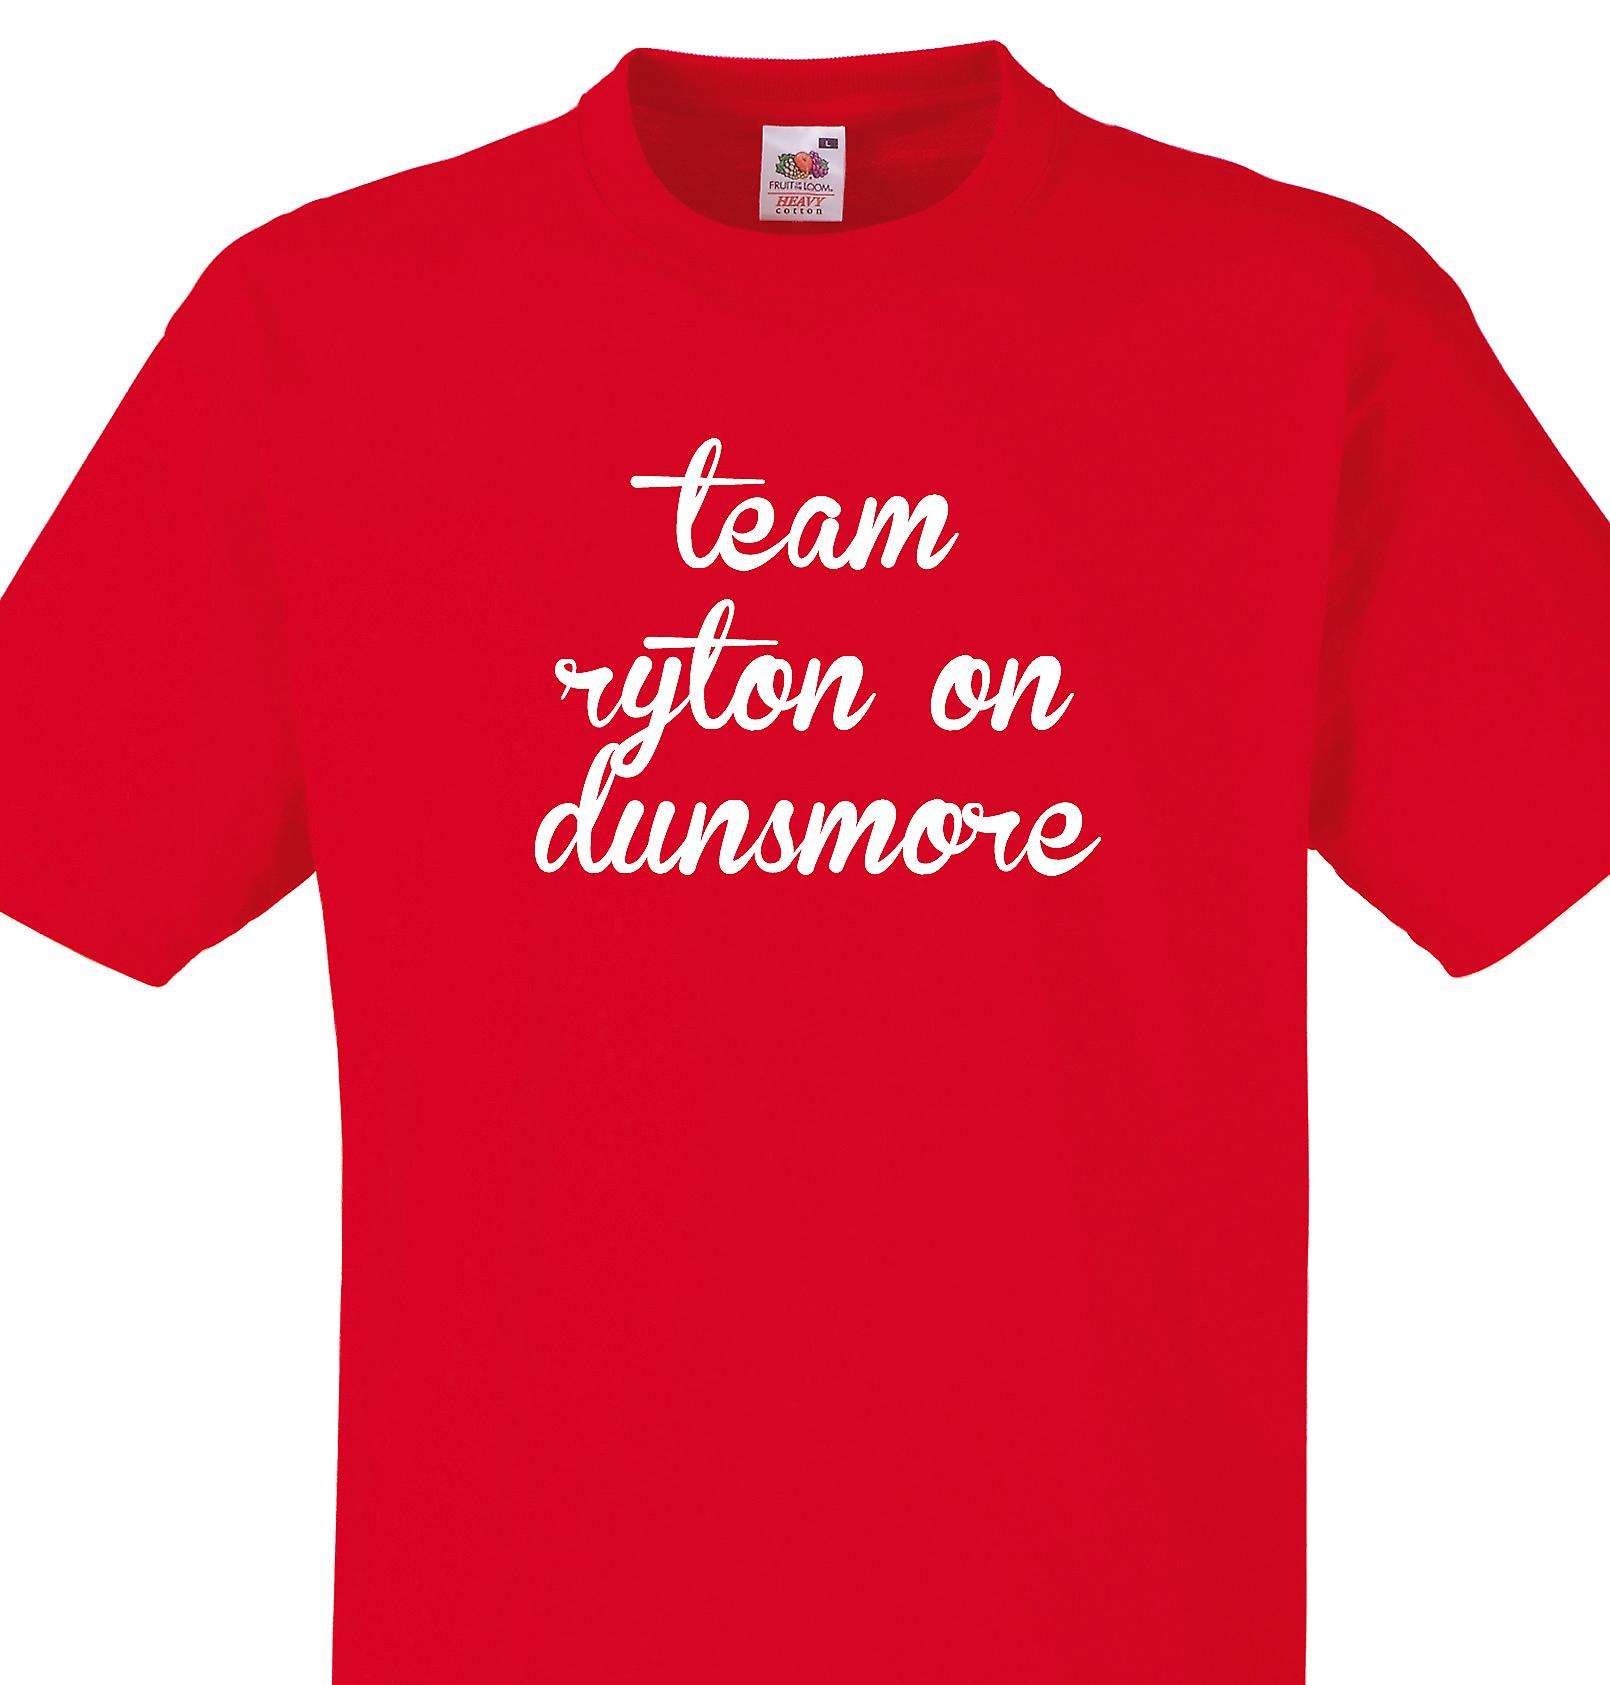 Team Ryton on dunsmore Red T shirt